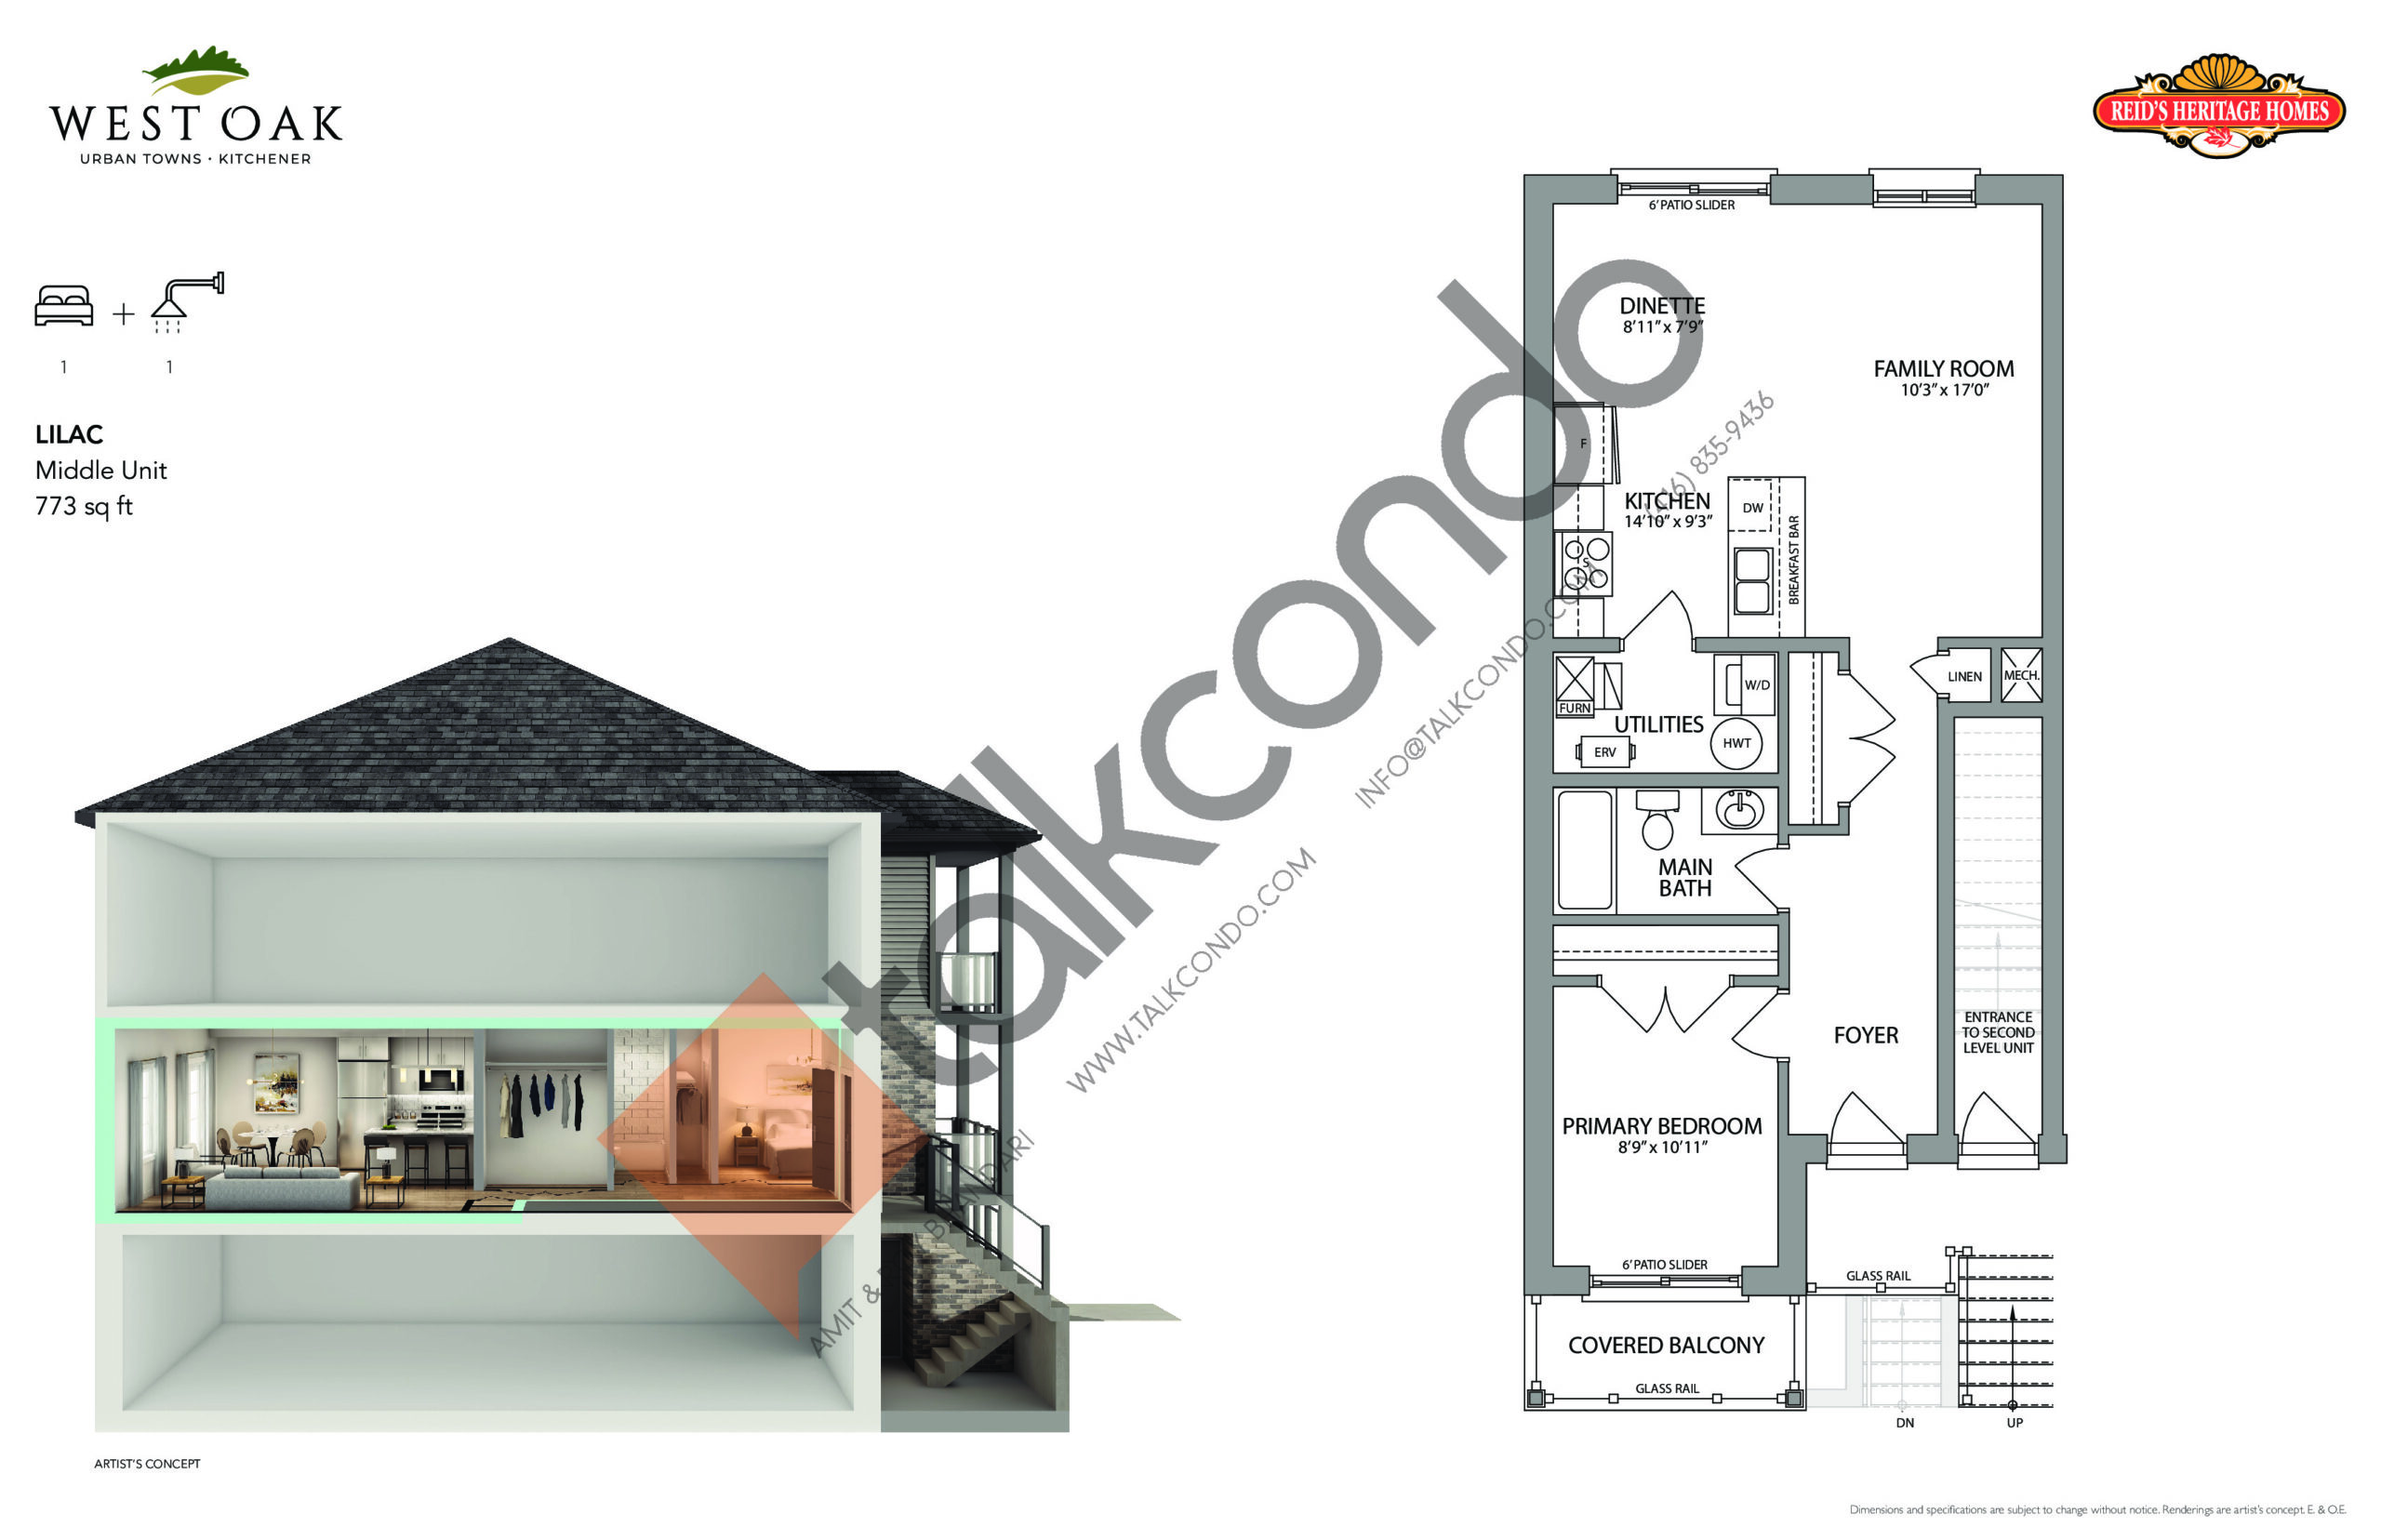 Lilac Floor Plan at West Oak Urban Towns - 773 sq.ft